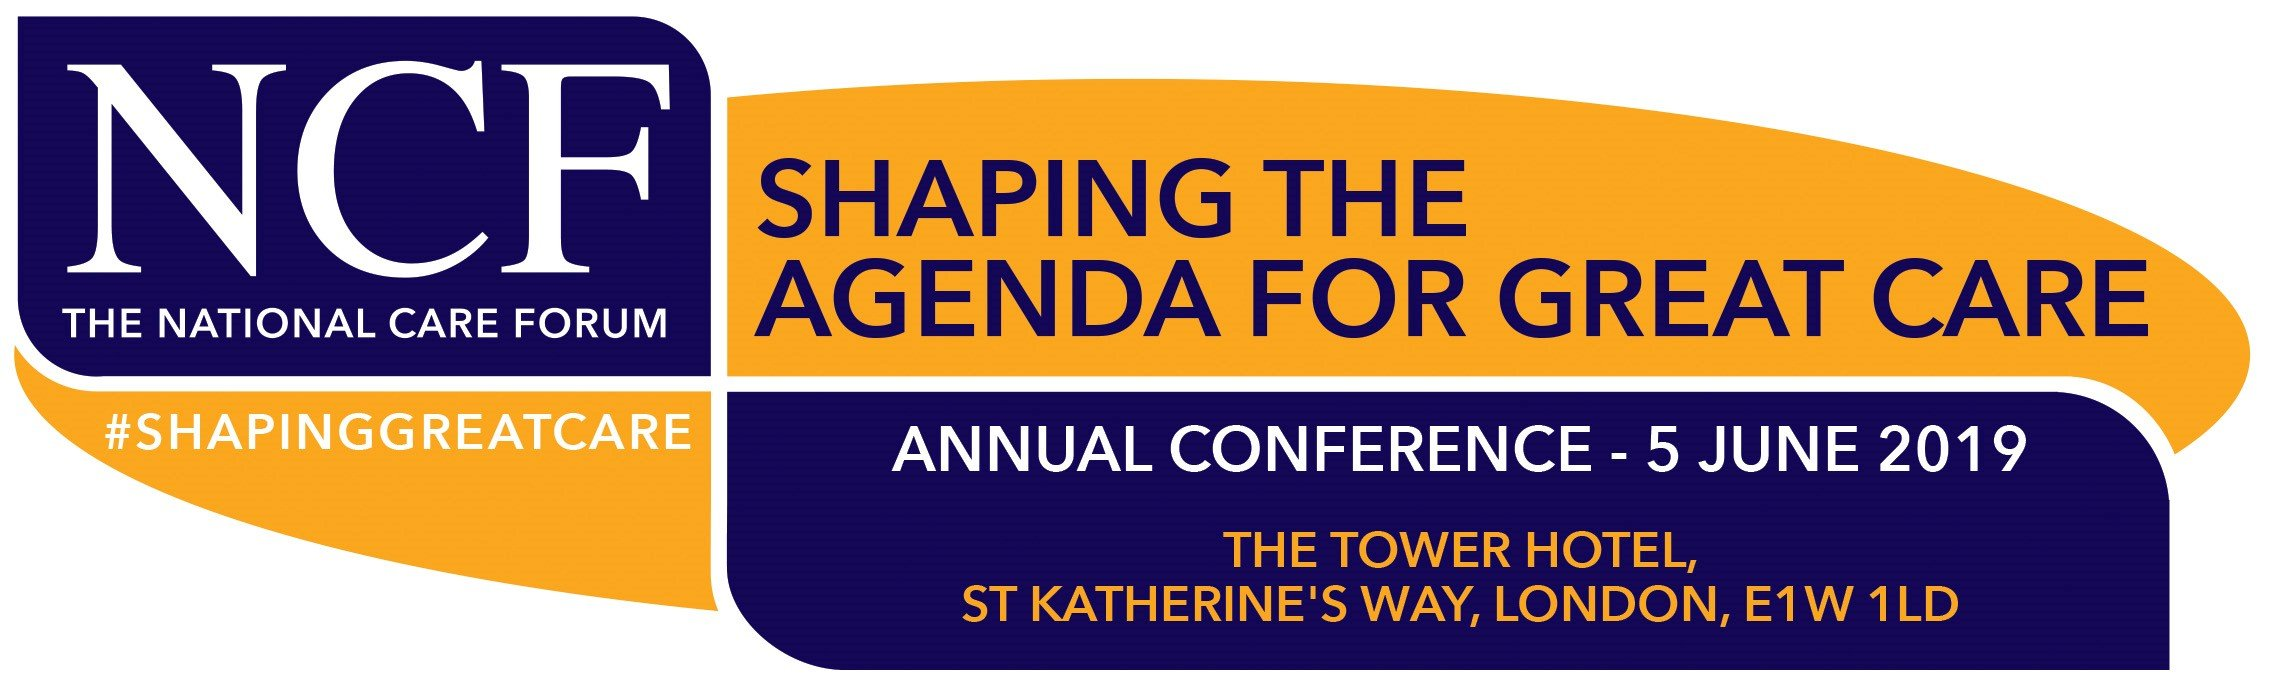 NCF Annual Conference | National Care Forum